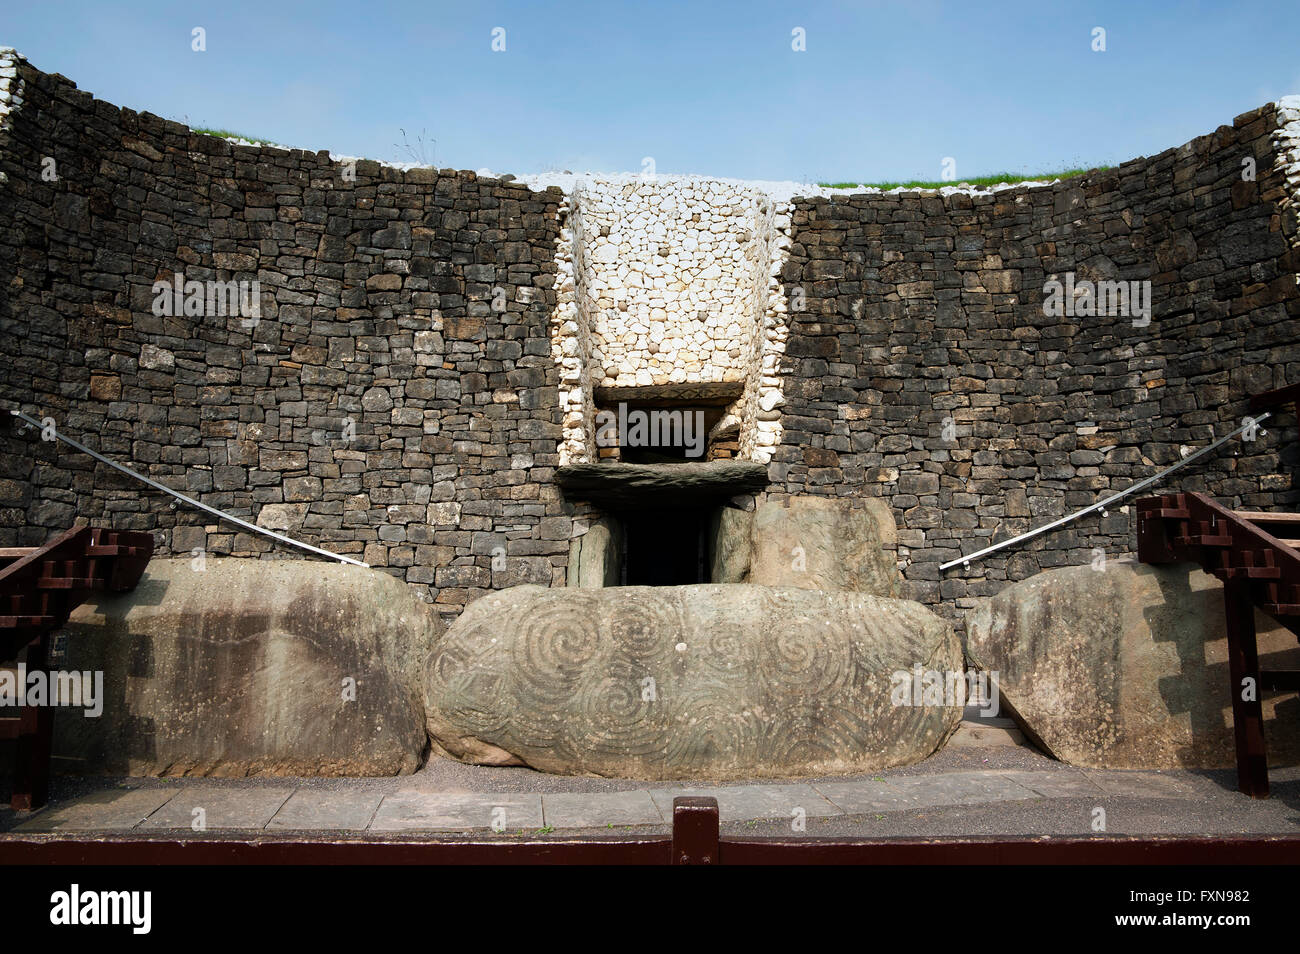 Detail of the Newgrange in the Boyne Valley is a 5000 year old Passage Tomb. Co. Meath, Ireland Stock Photo